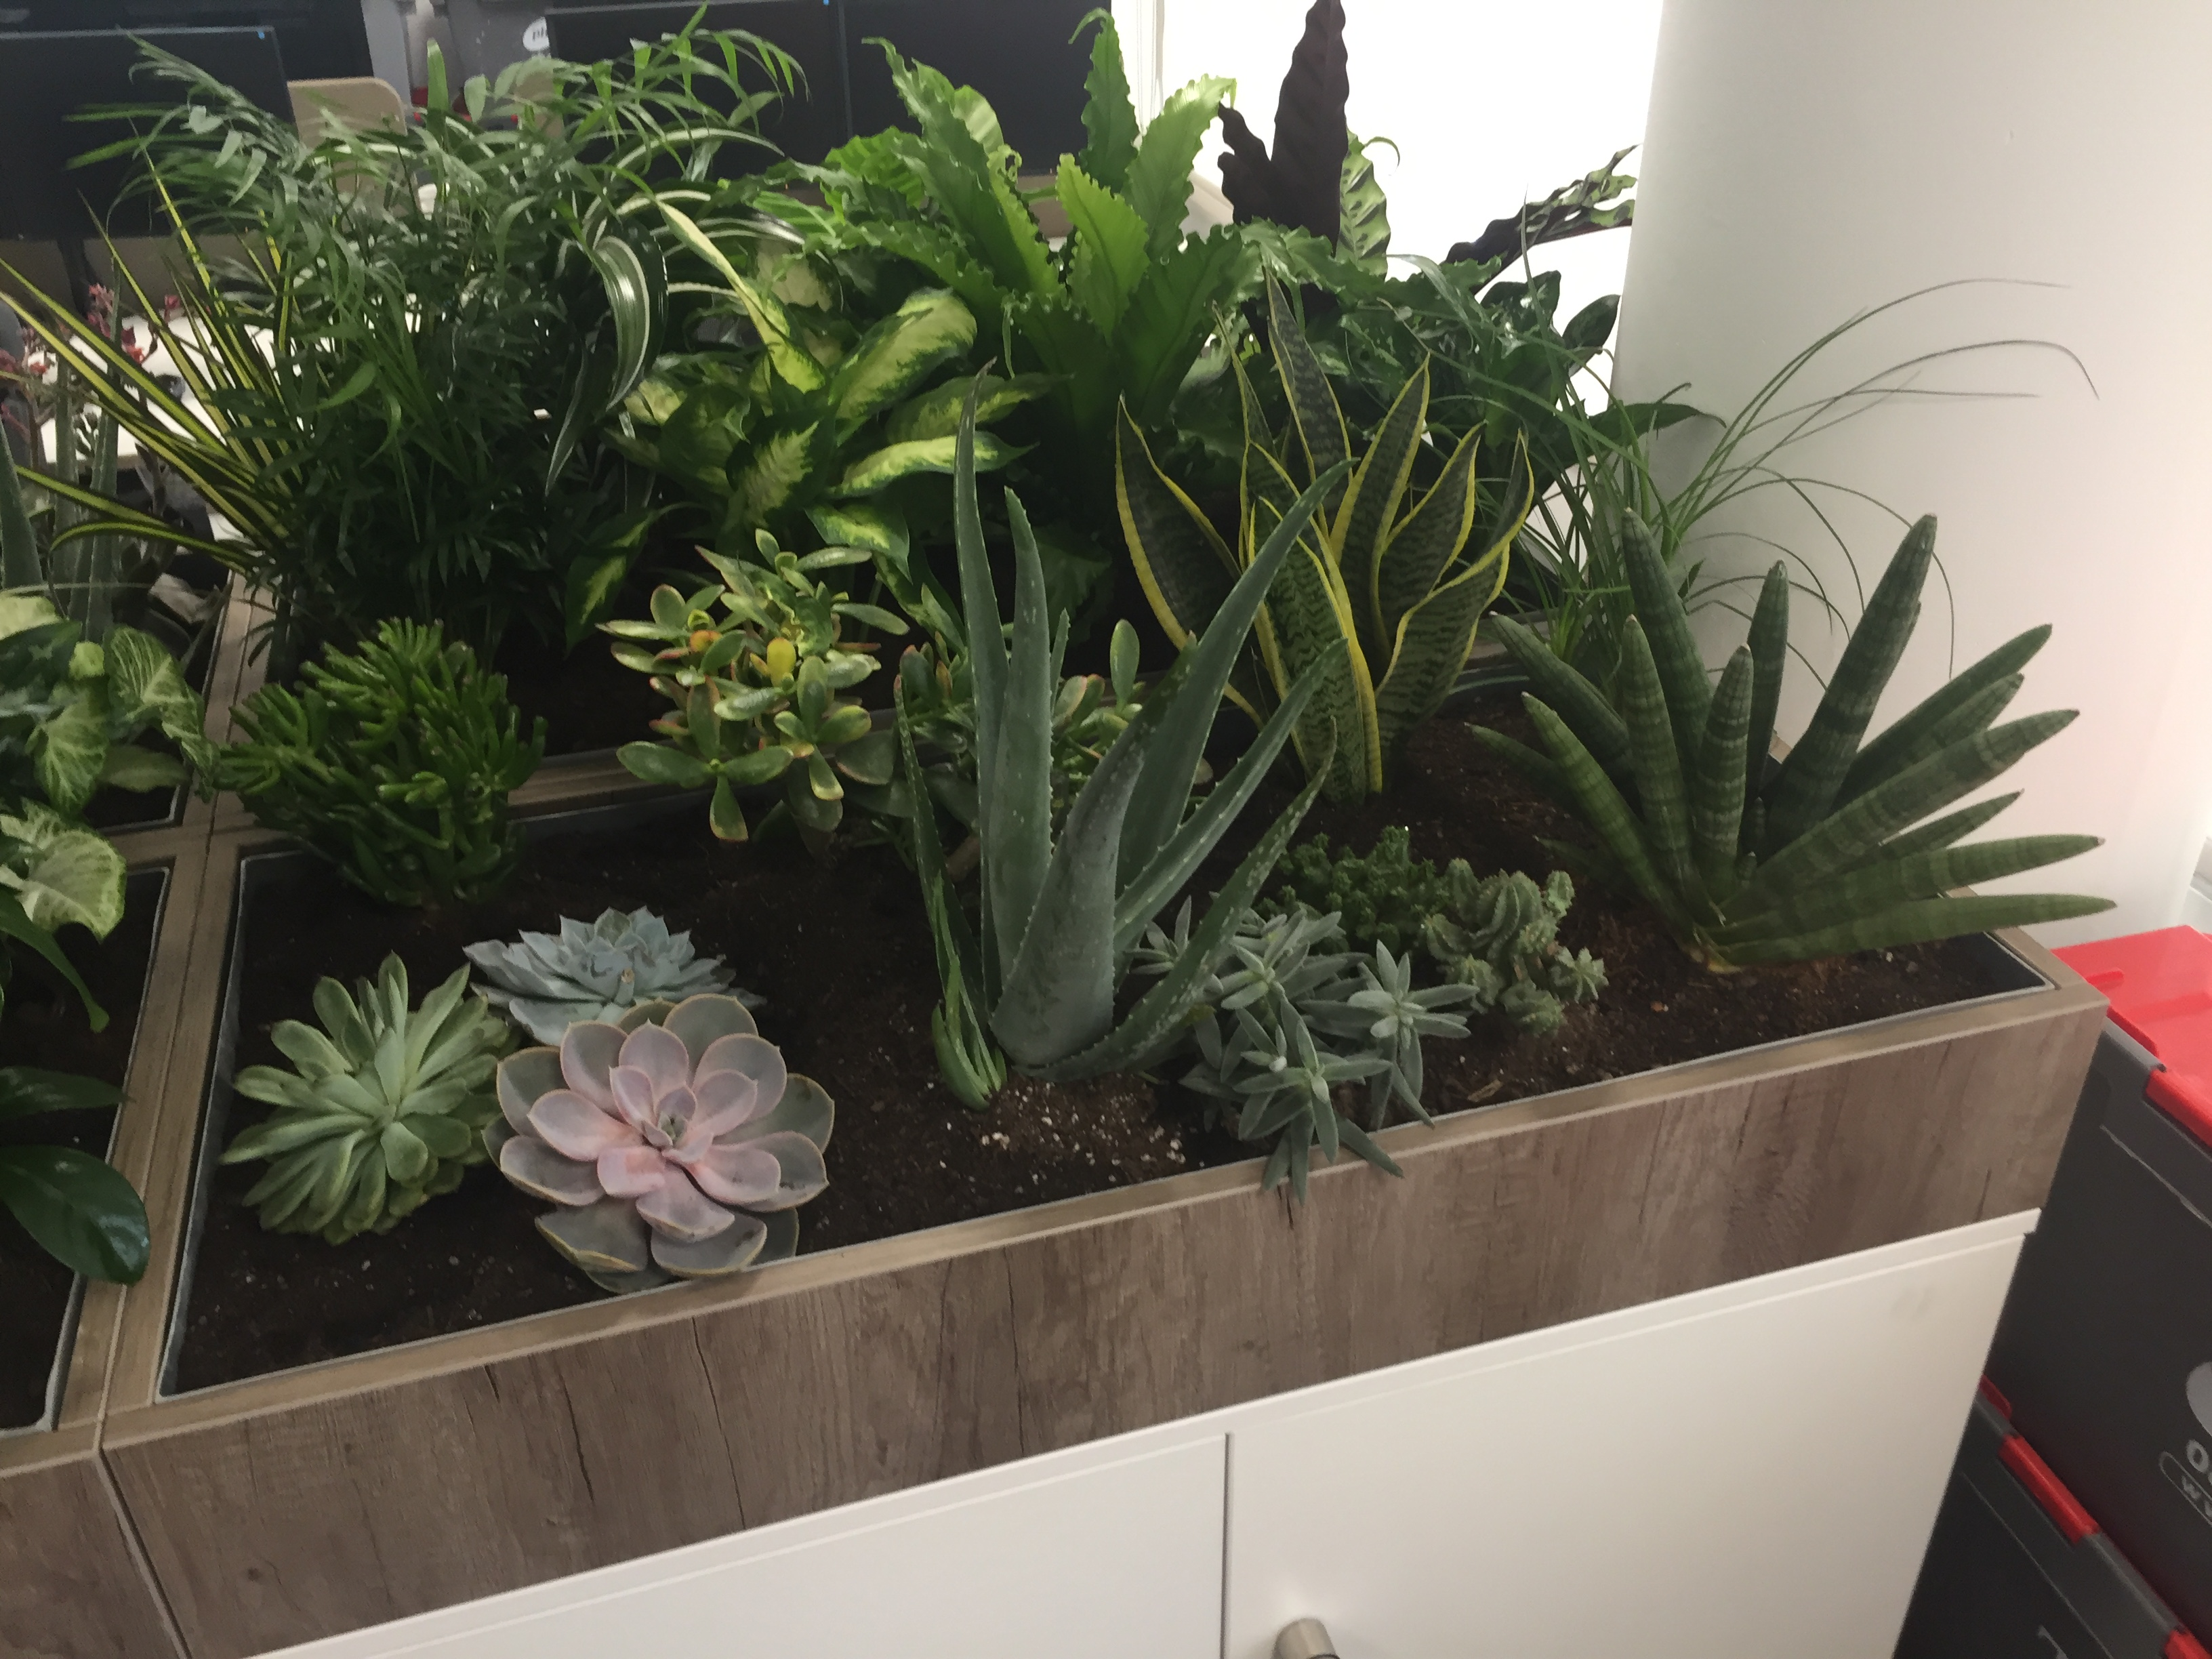 Build in office plant displays